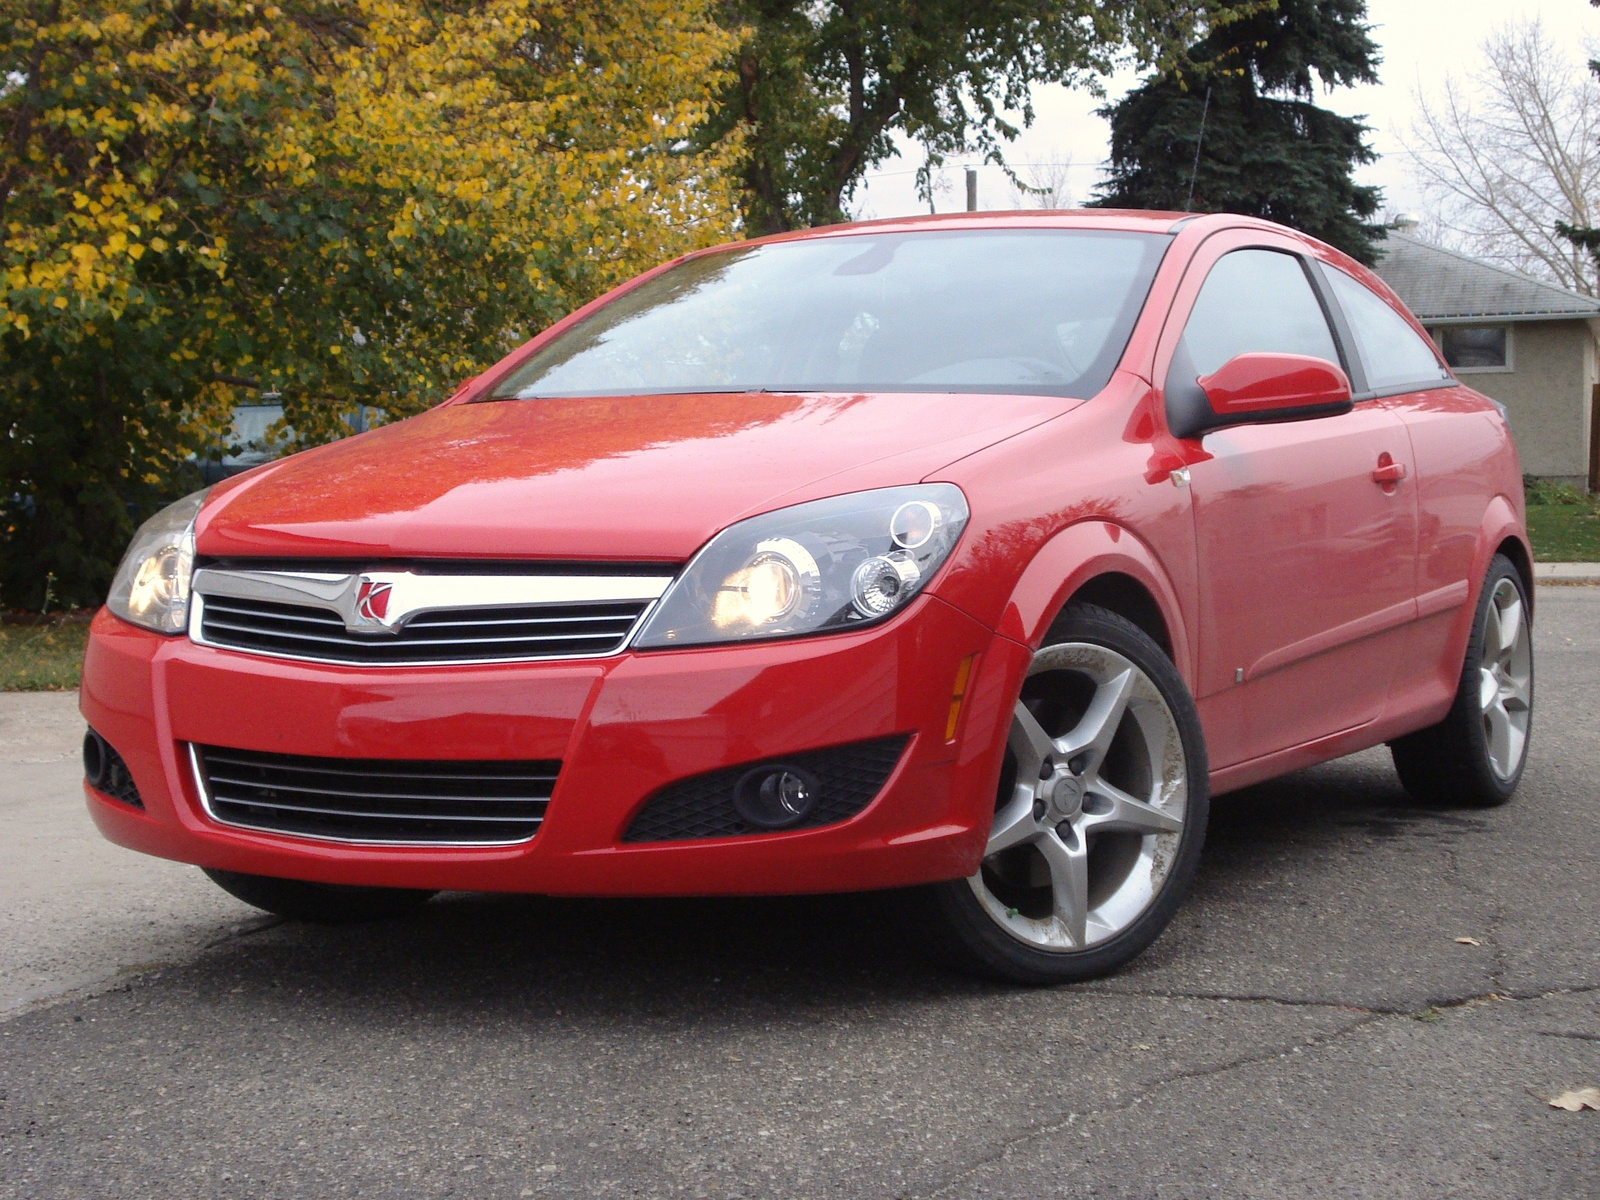 2008 Saturn Astra XR Coupe picture